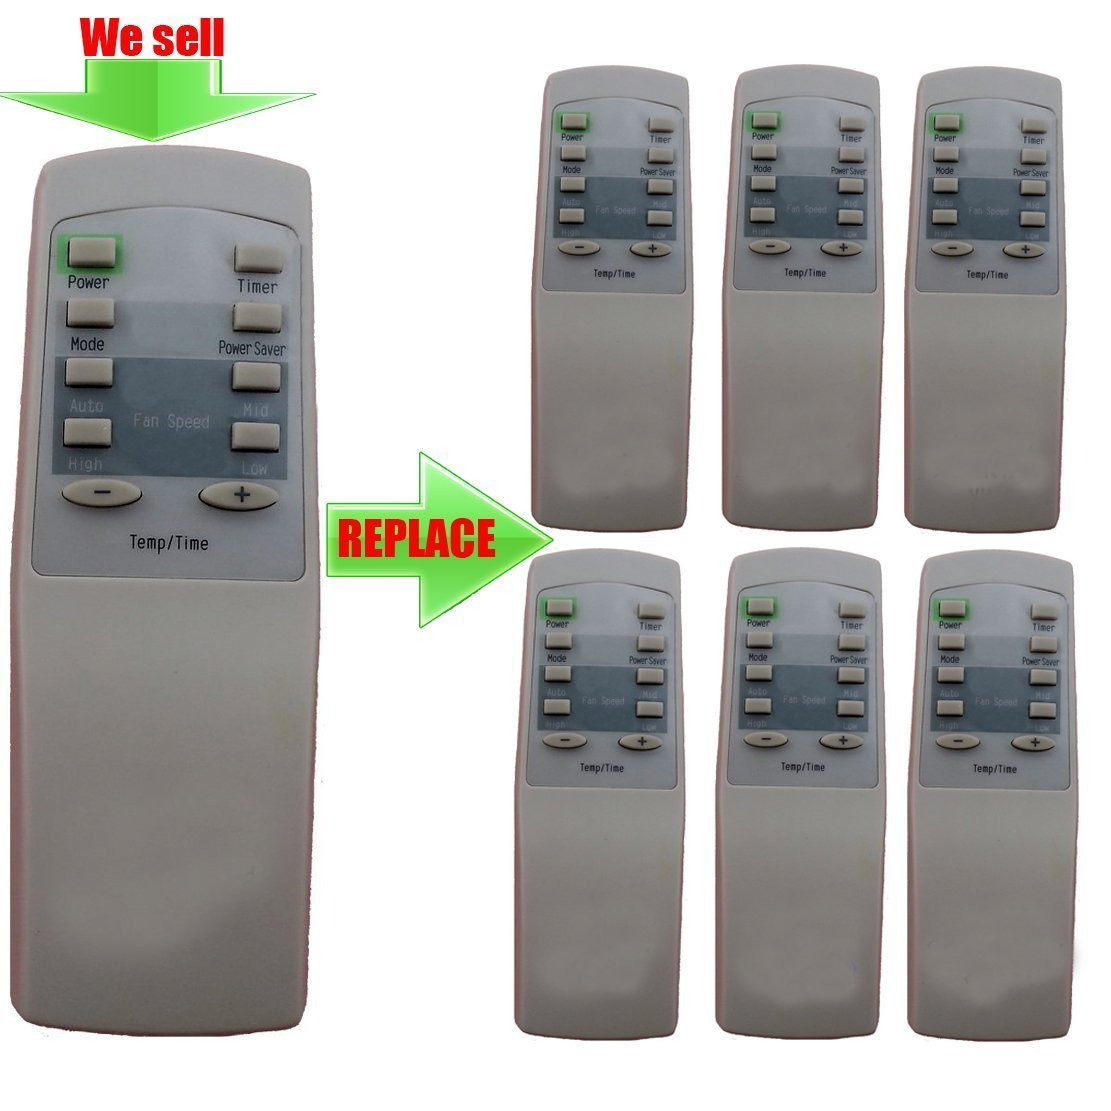 Replacement for Admiral Air Conditioner Remote Control AAW-05CR1FHU AAW-05CR1FHUE AAW-06CR1FD AAW-06CR1FHU AAW-08CR1FHU AAW-08CR1FHUE AAW-08DR1FHU AAW-10CR1FHU AAW-10CR1FHUE AAW-10DR3FHU AAW-12CR1FHU